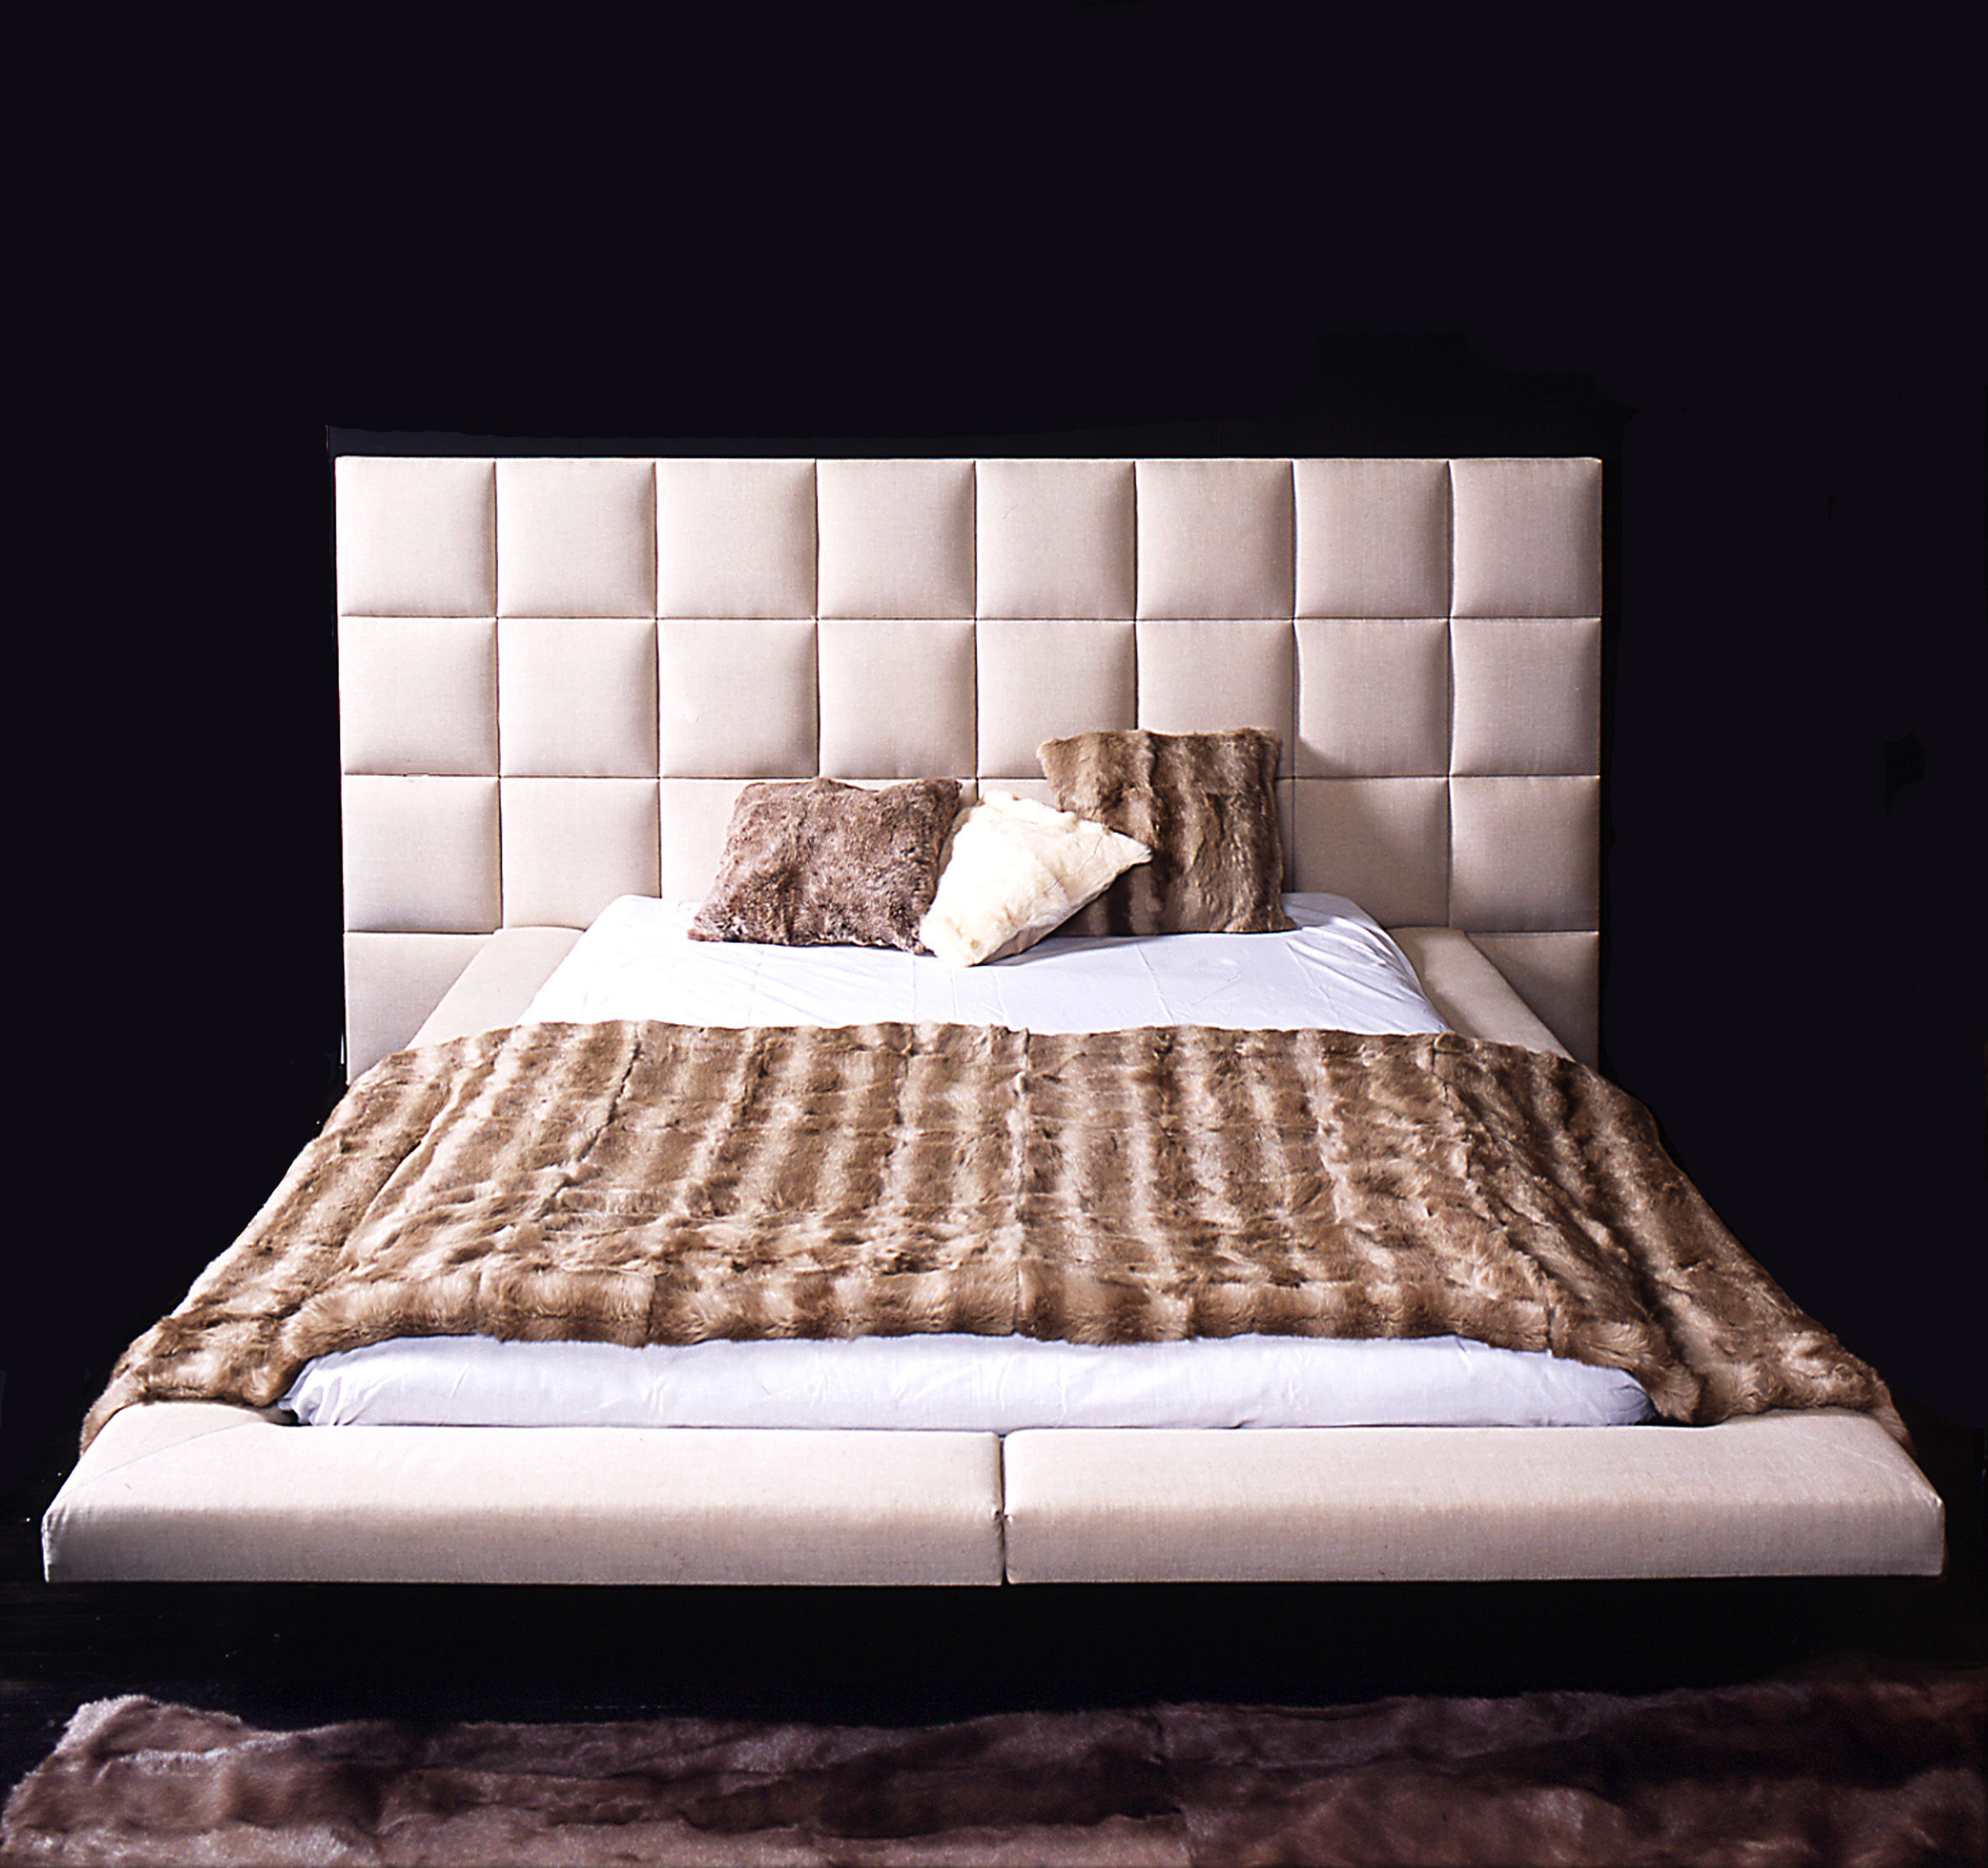 for diy wood canada white panels glossy masculine full and leather upholstered size cal custom headboard wall furniture beds headboards king precious club of queen